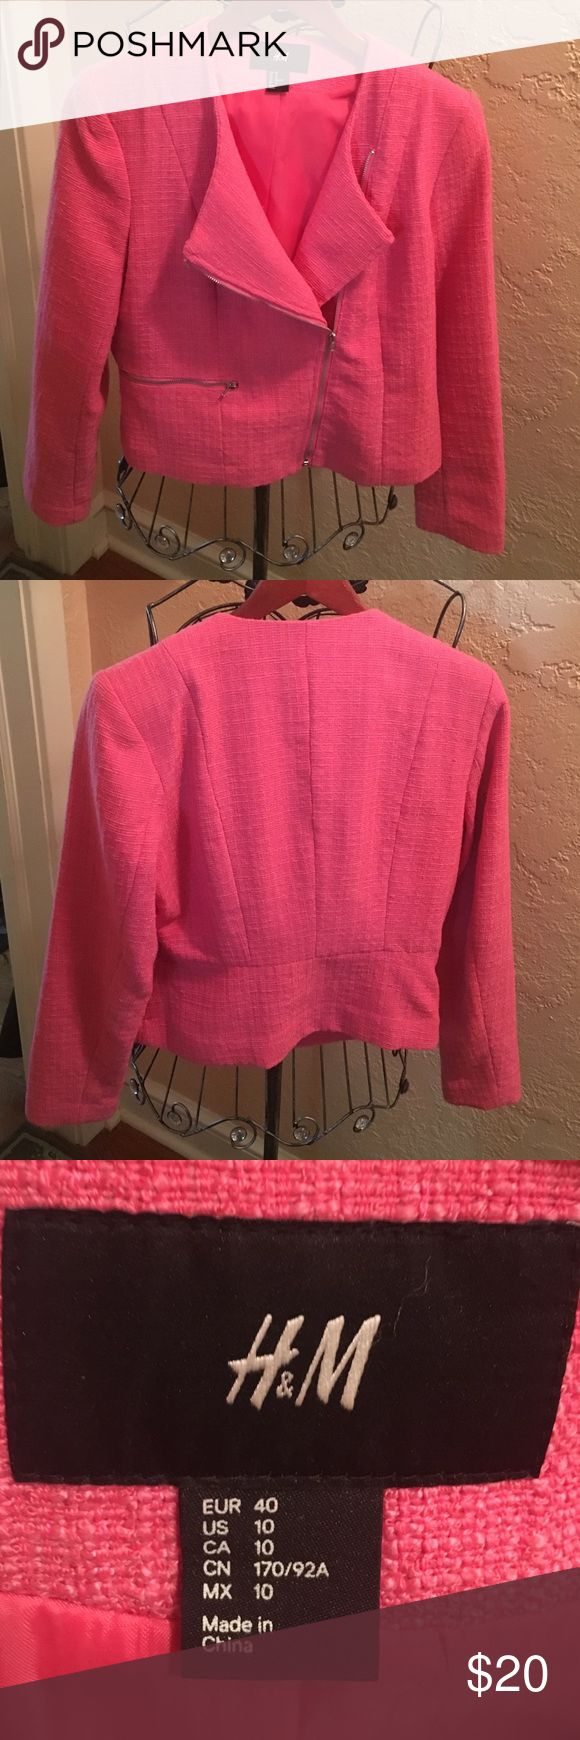 Selling this EASYER pink zip up jacket by H&M size 10 on Poshmark! My username is: susanpalonicola. #shopmycloset #poshmark #fashion #shopping #style #forsale #H&M #Jackets & Blazers